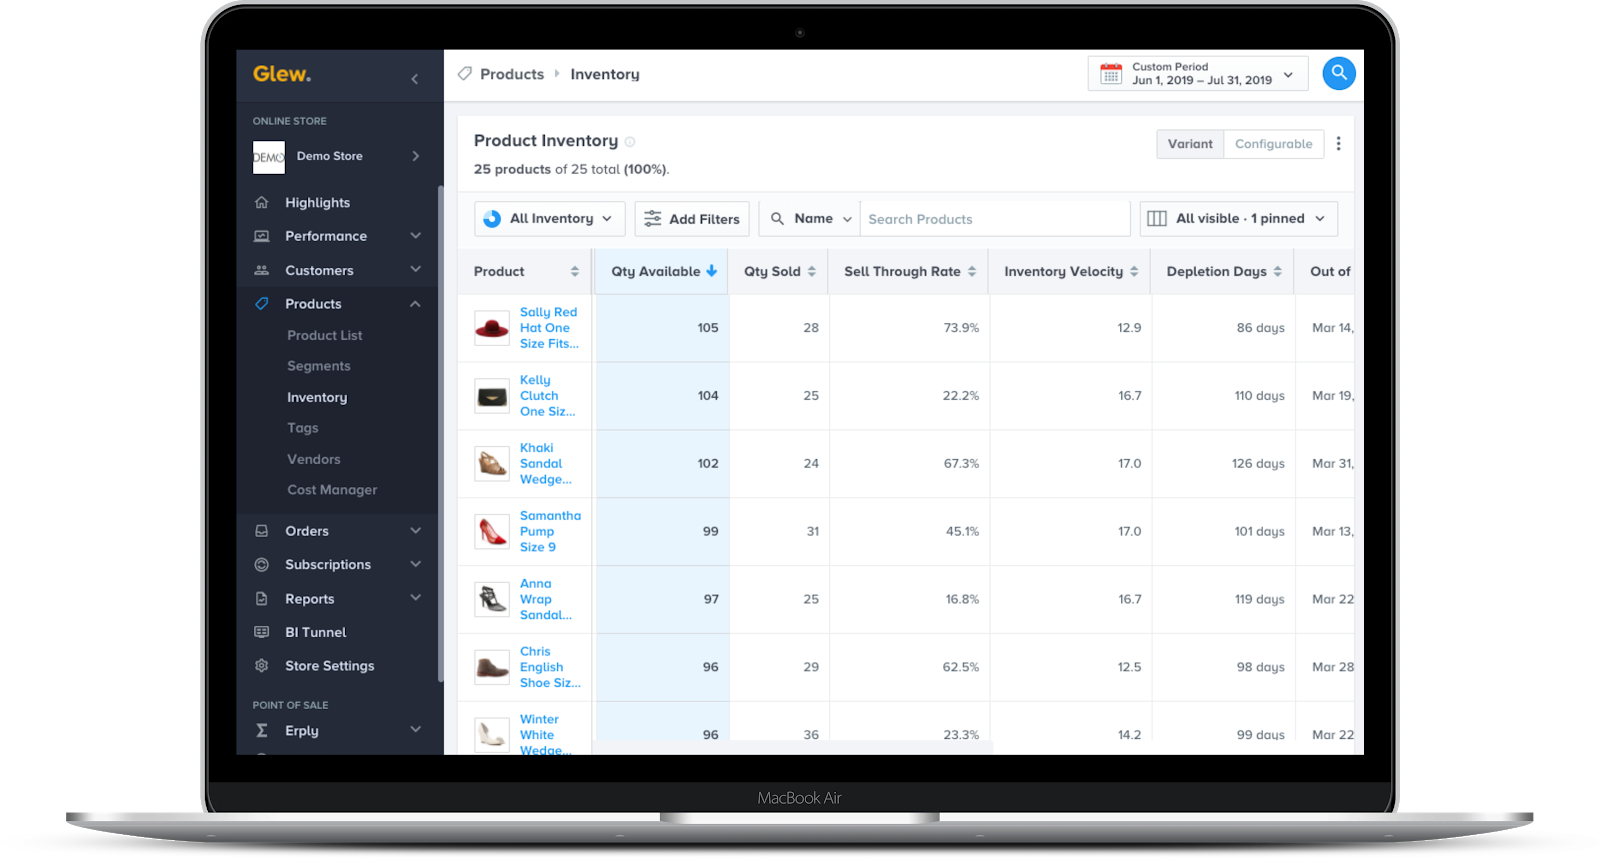 See it in Glew: Glew's inventory reporting, allowing you to track sell through rate, inventory velocity, depletion days, out of stock date and more for all your products